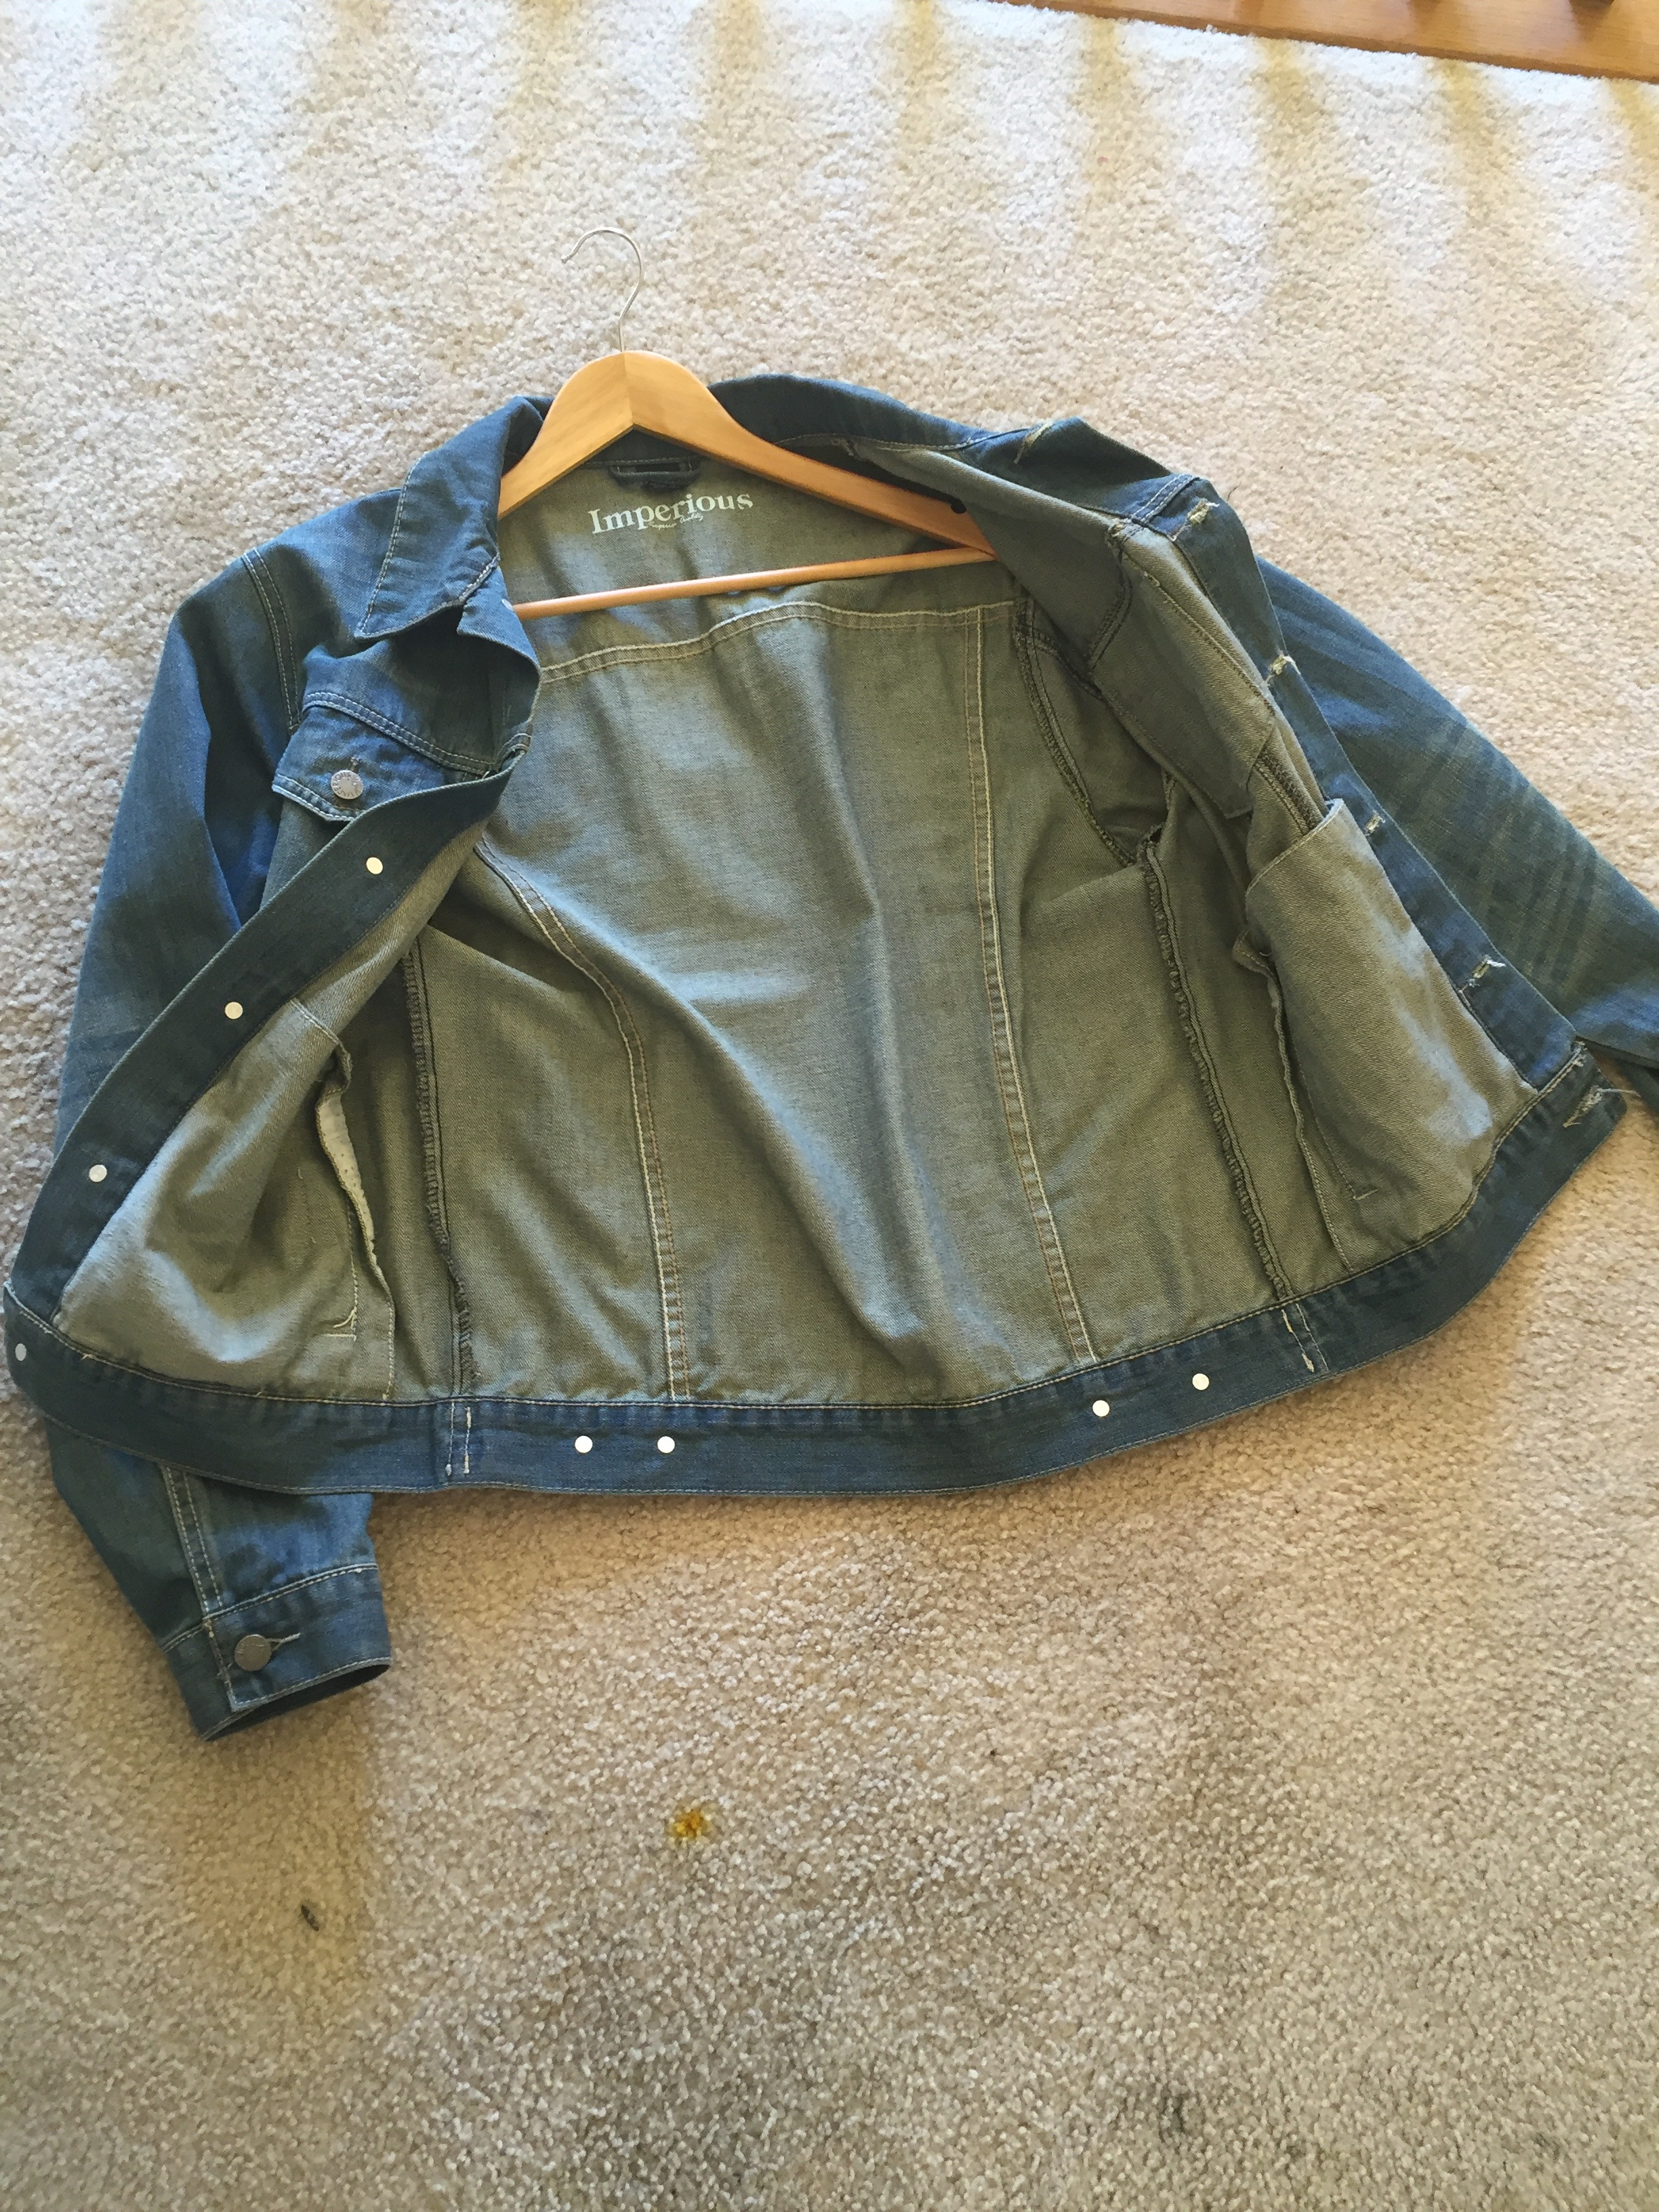 Imperious All Denim Jacket Grailed